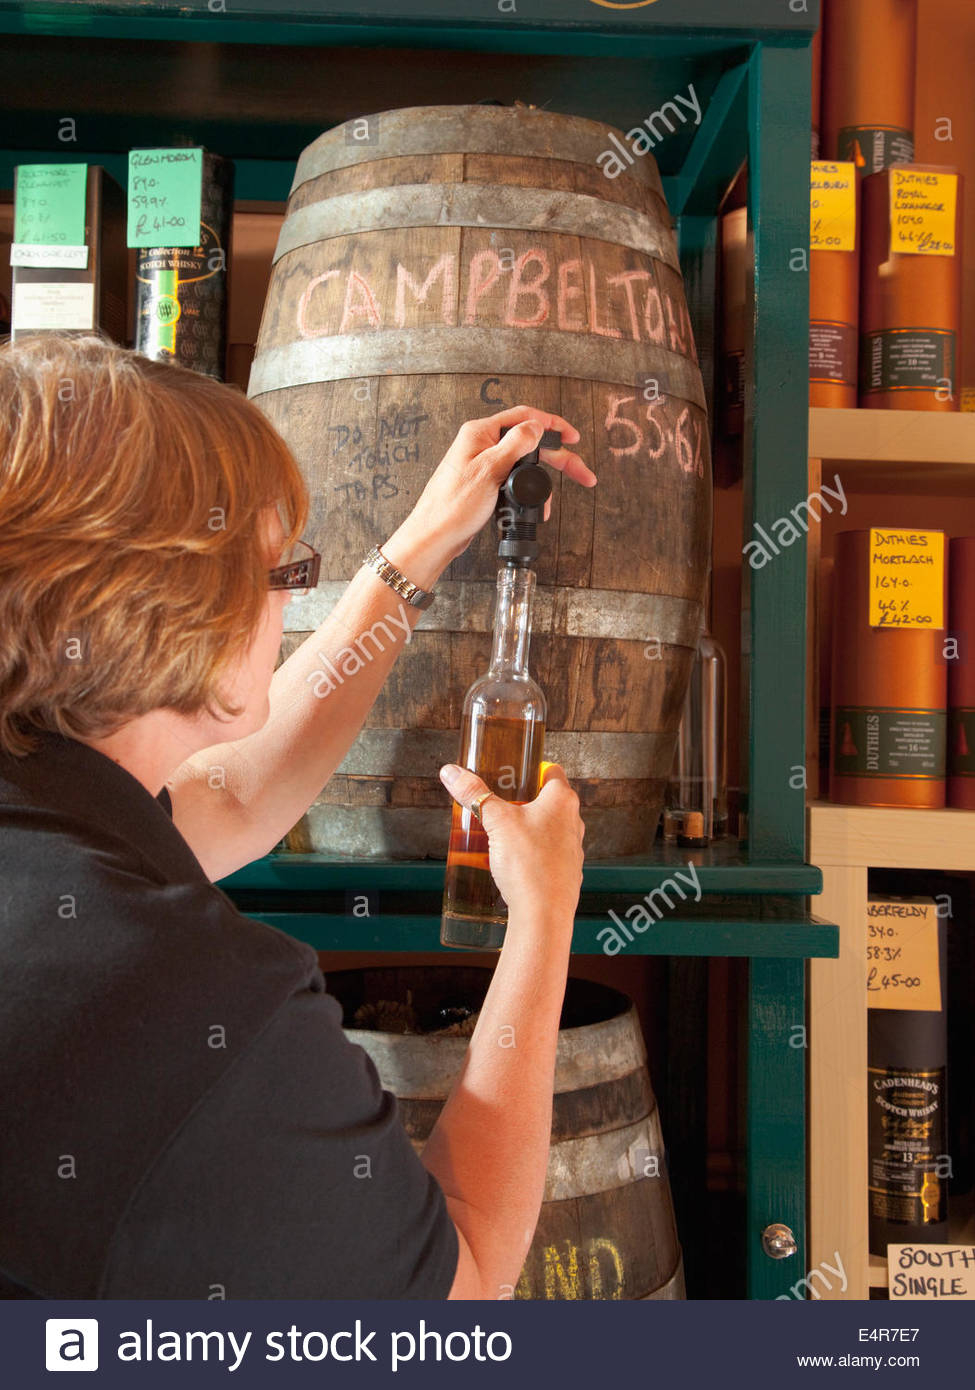 The shop assistant fills a bottle with whisky at the shop at the Springbank Distillery, Campbeltown, Kintyre, Argyll, - Stock Image